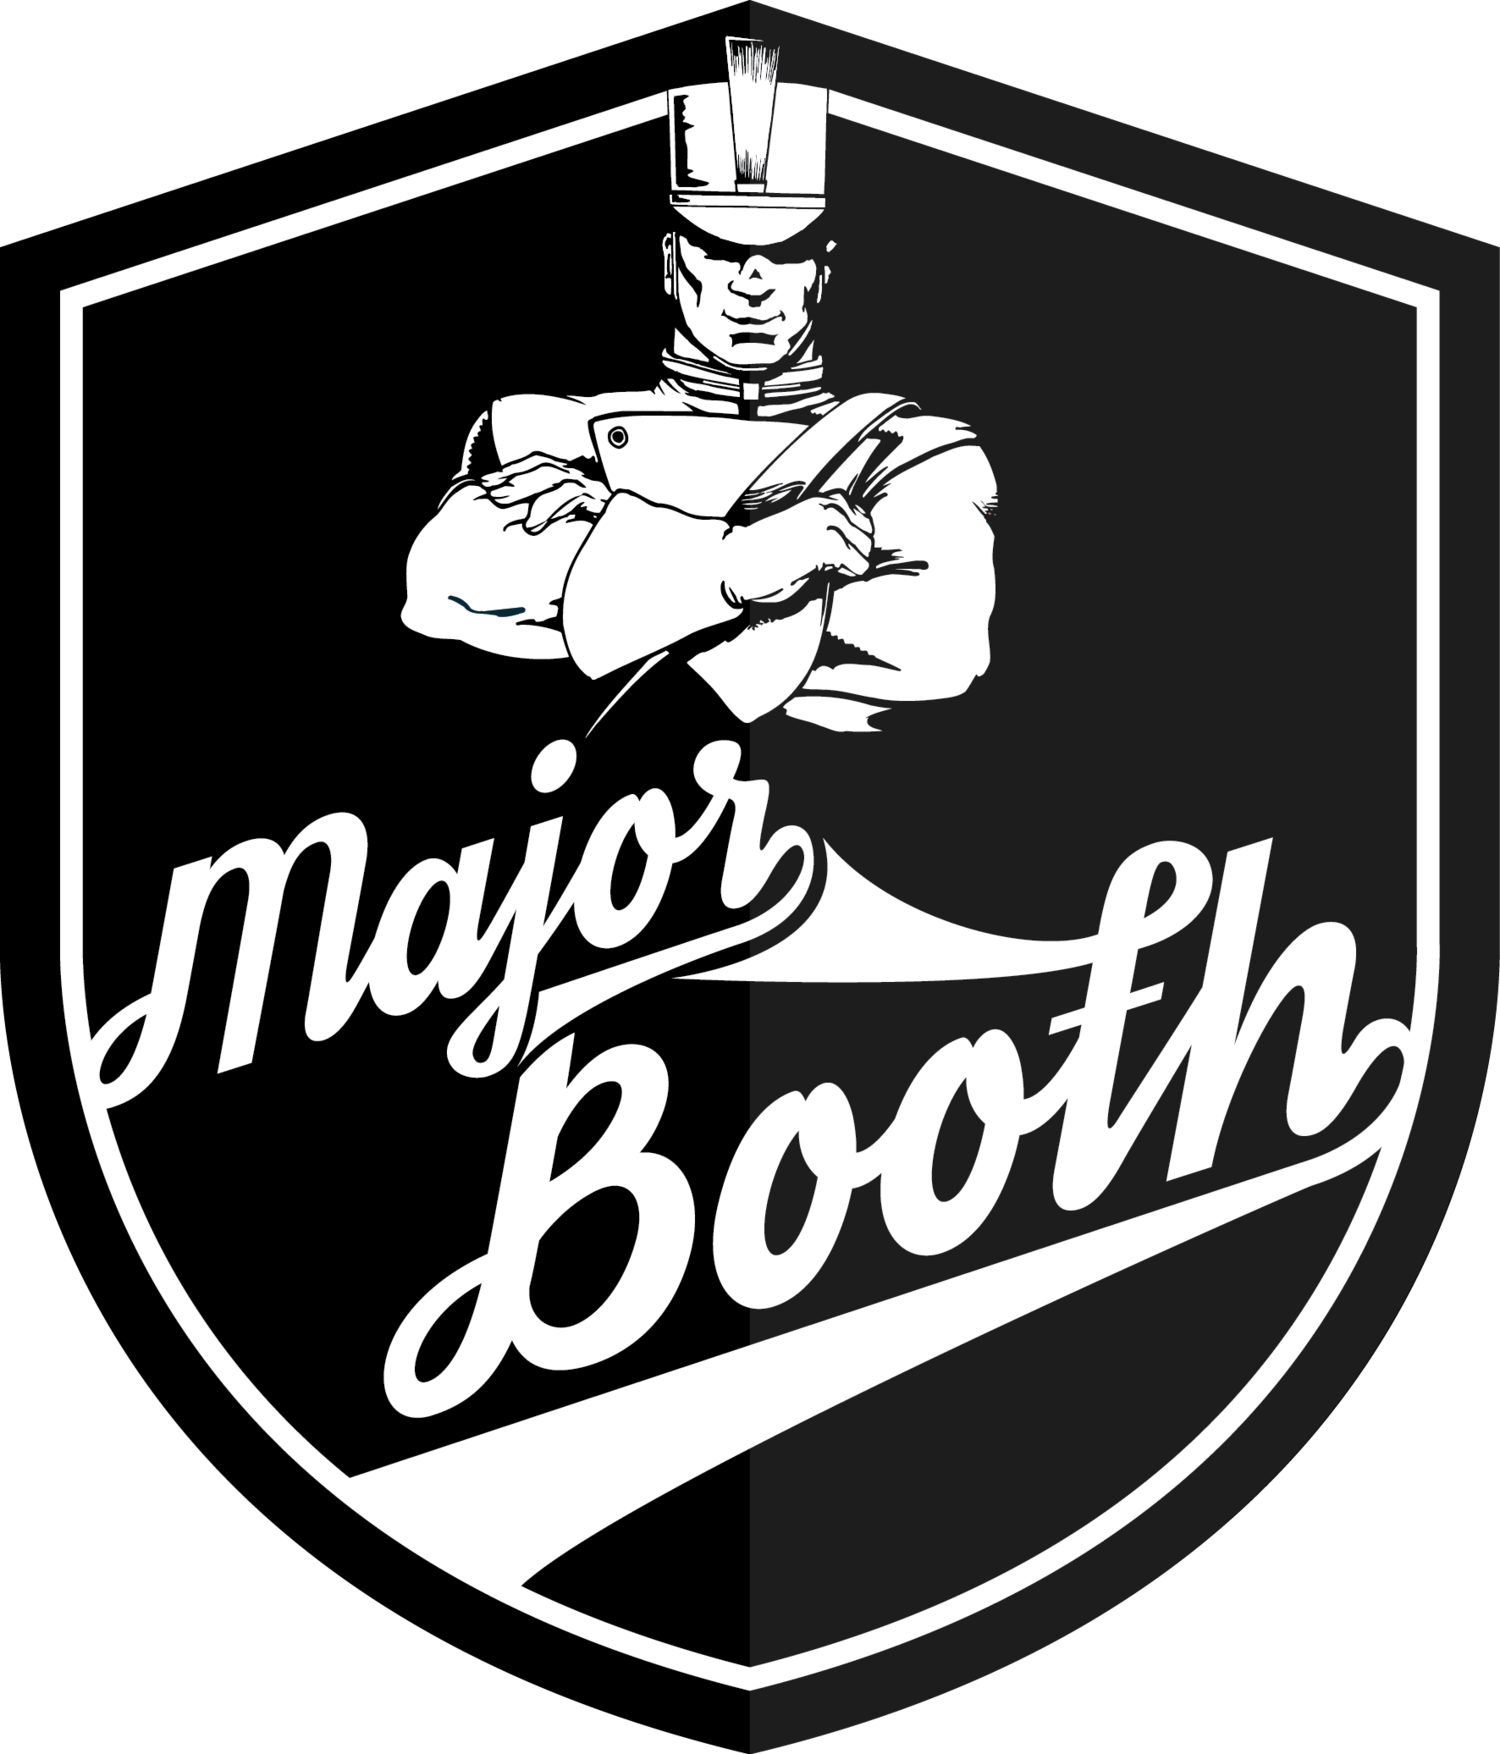 Major Booth